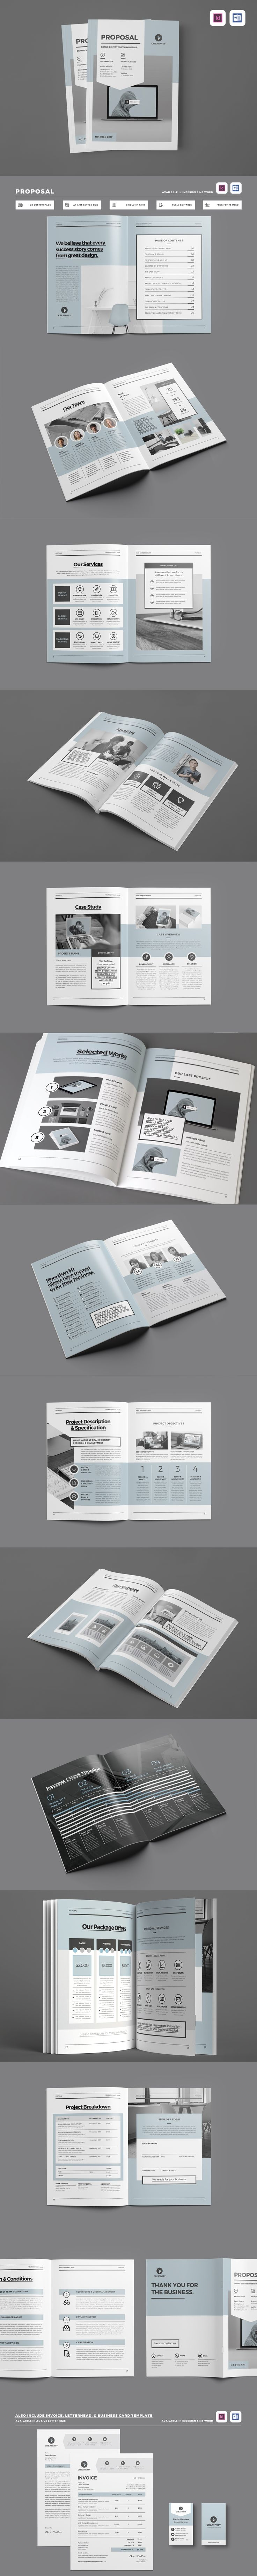 Clean u0026 Professional Proposal Template With Include